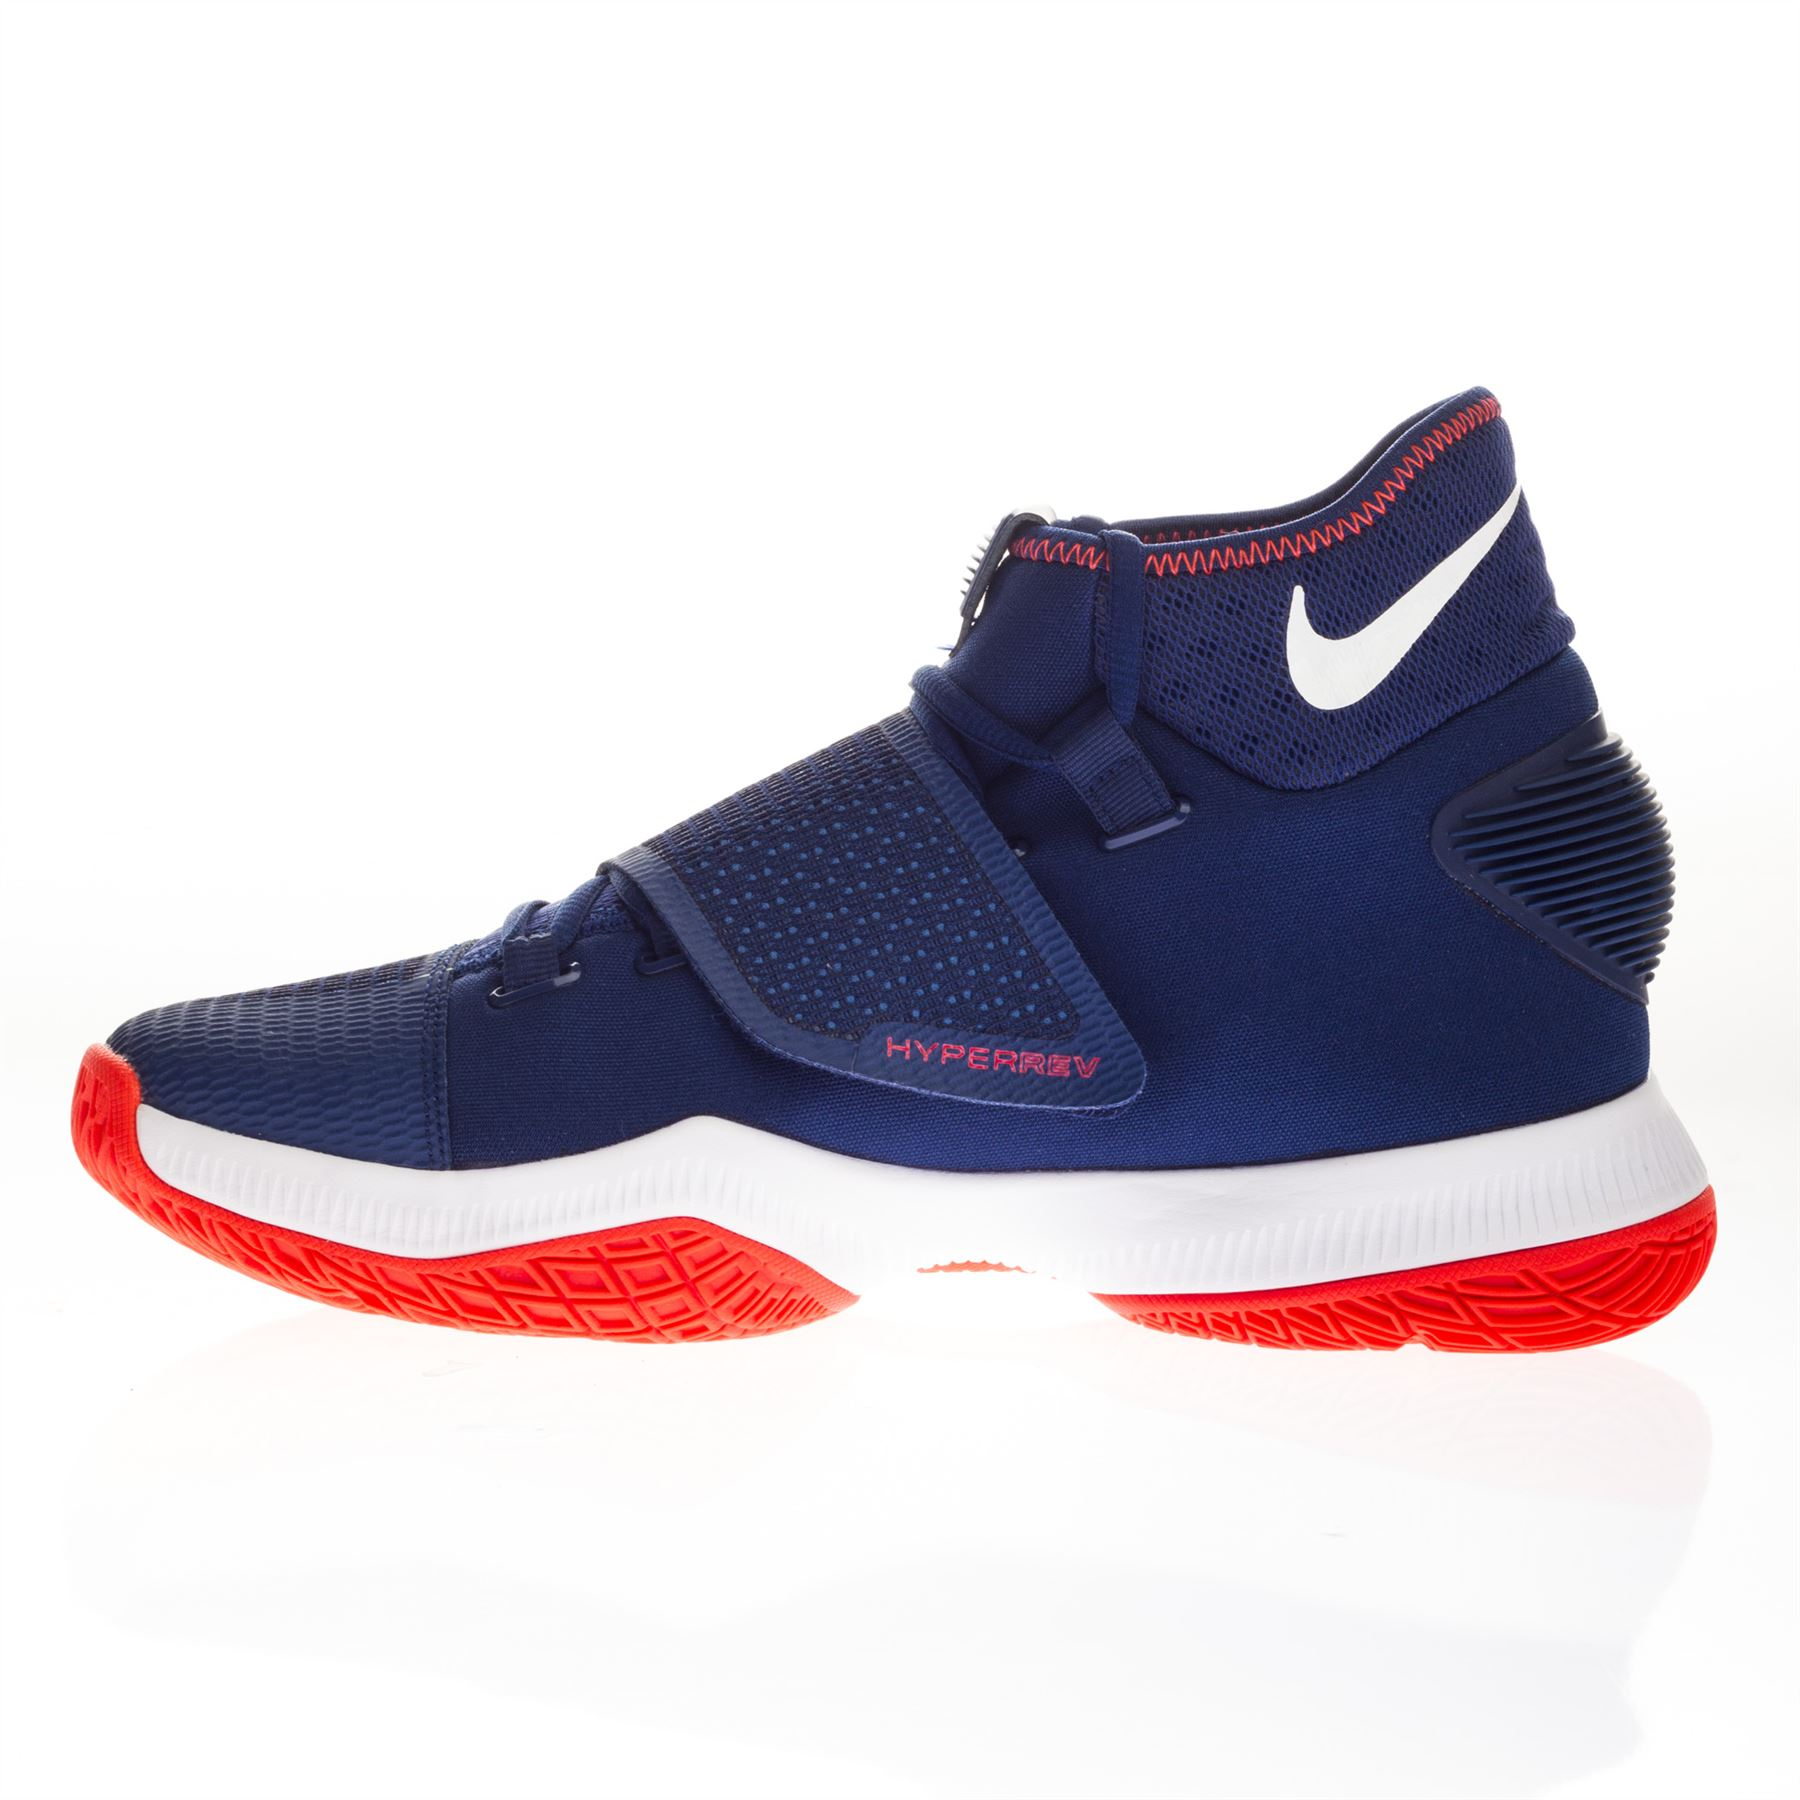 Nike Air Trainer Sc High Mens. NIKE Air Trainer Sc High Mens. by NIKE. $ $ 79 24 Prime. FREE Shipping on eligible orders. Some sizes/colors are Prime eligible. nike air trainer SC high PRM QS mens hi top trainers Sneakers shoes. by NIKE. $ $ .